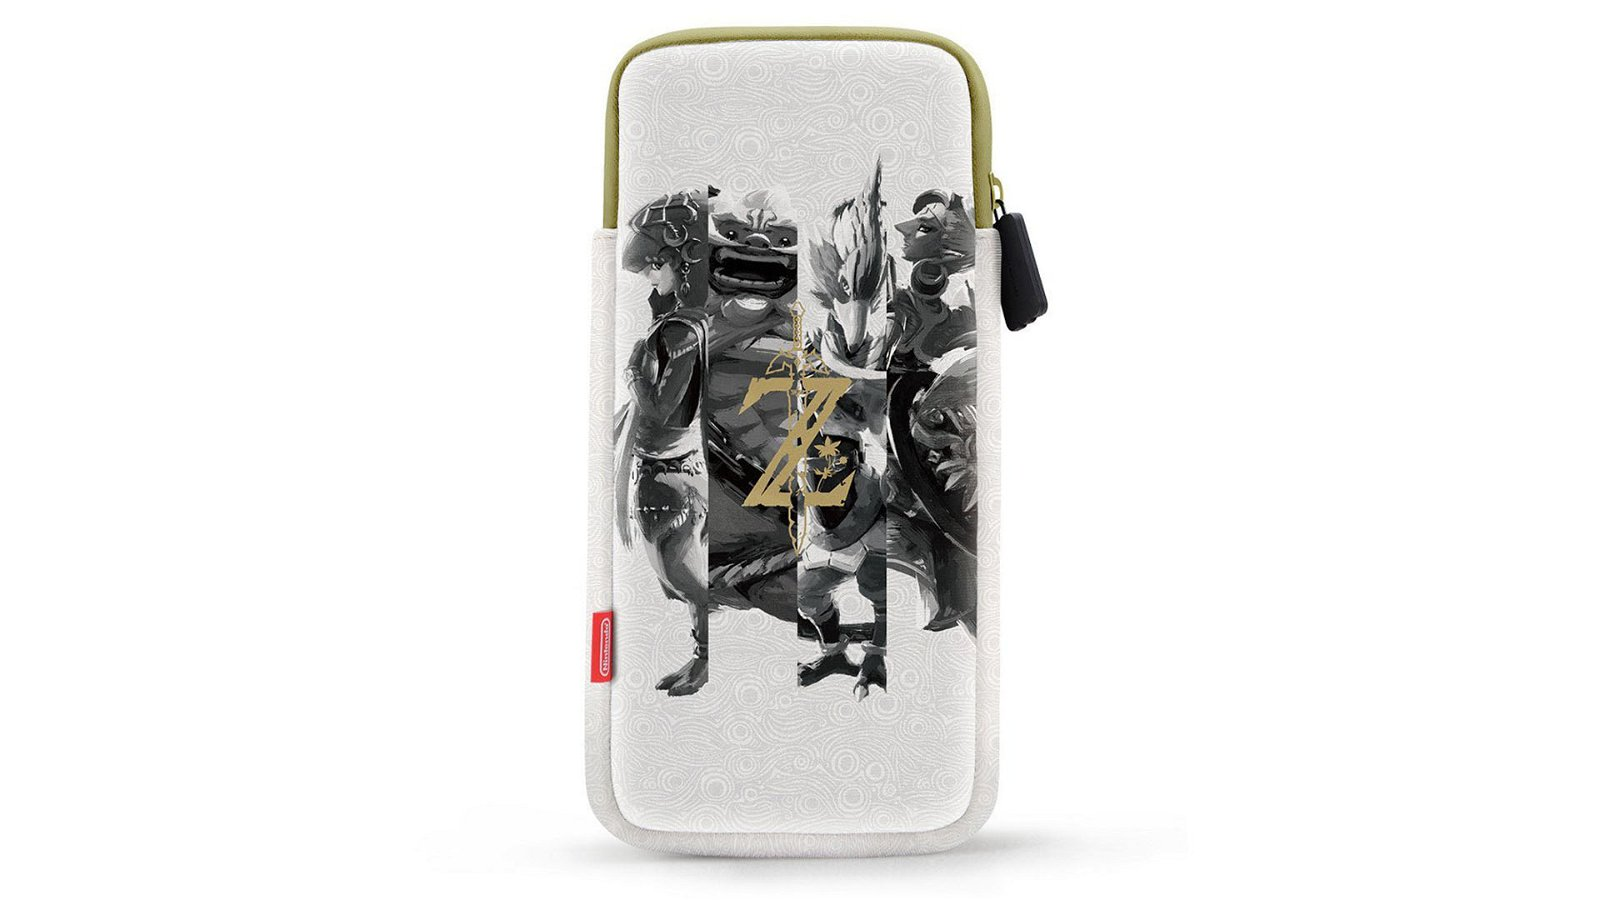 Nintendo Launching More Switch Cases in Japan